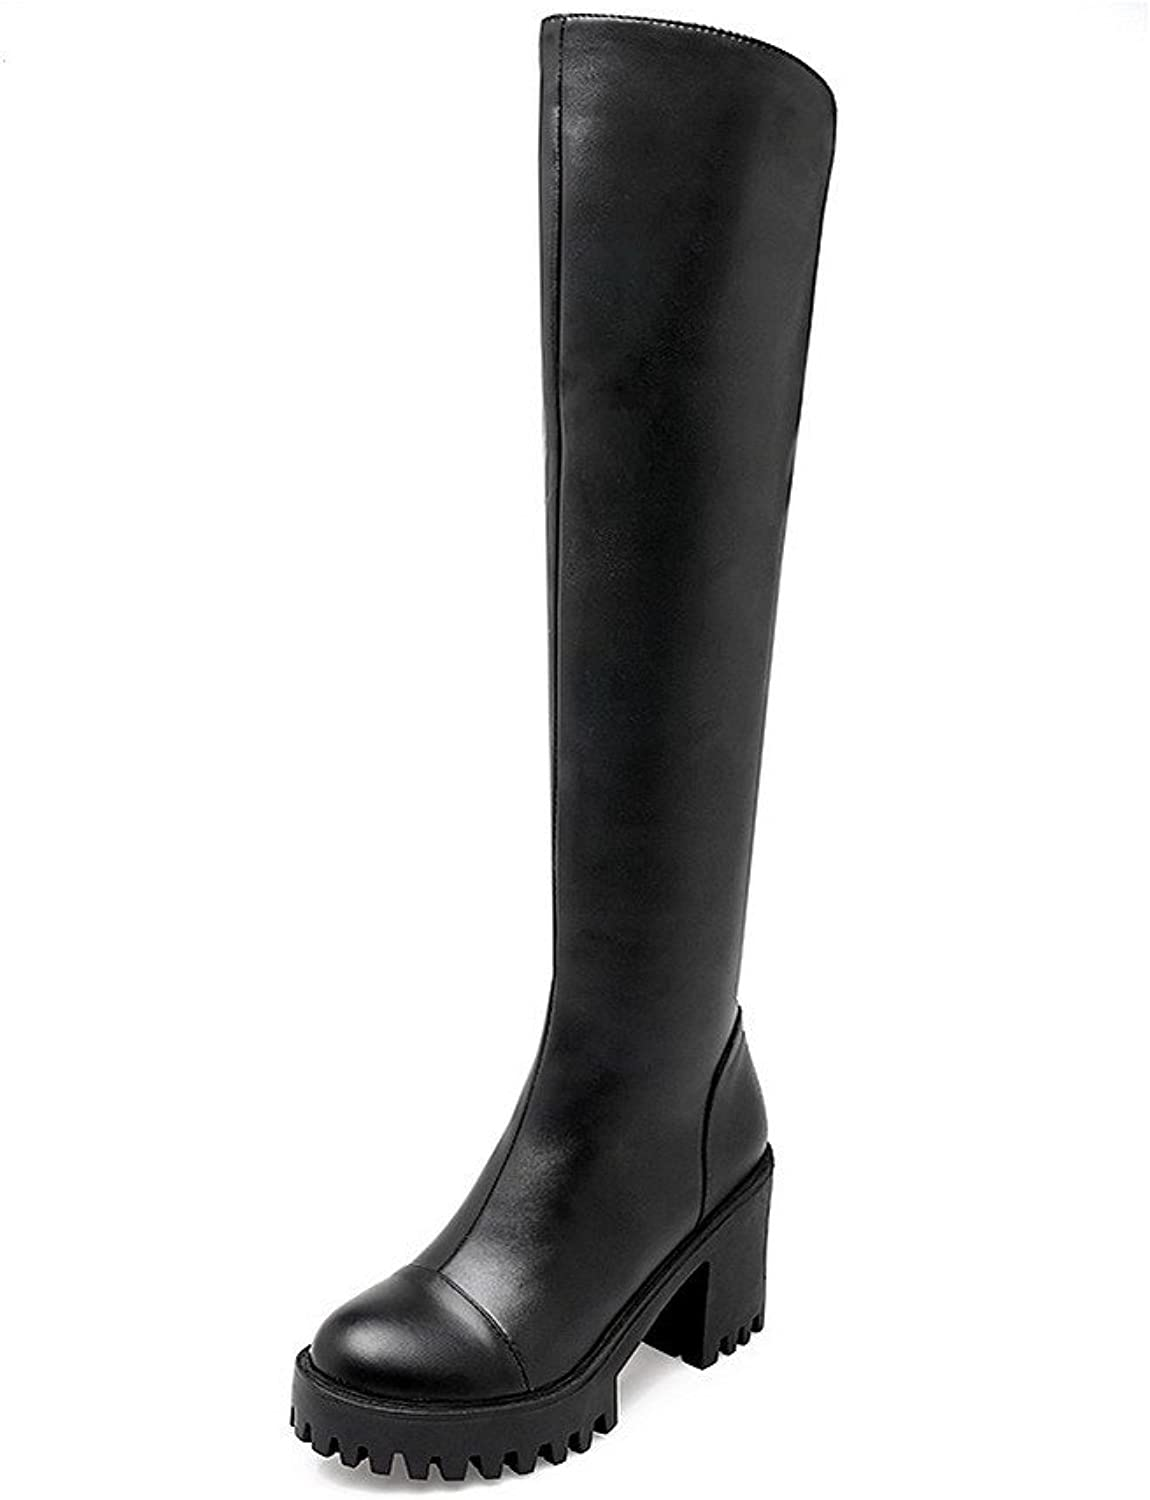 WeenFashion Women's High-Heels Solid Closed Round Toe Soft Material Zipper Boots